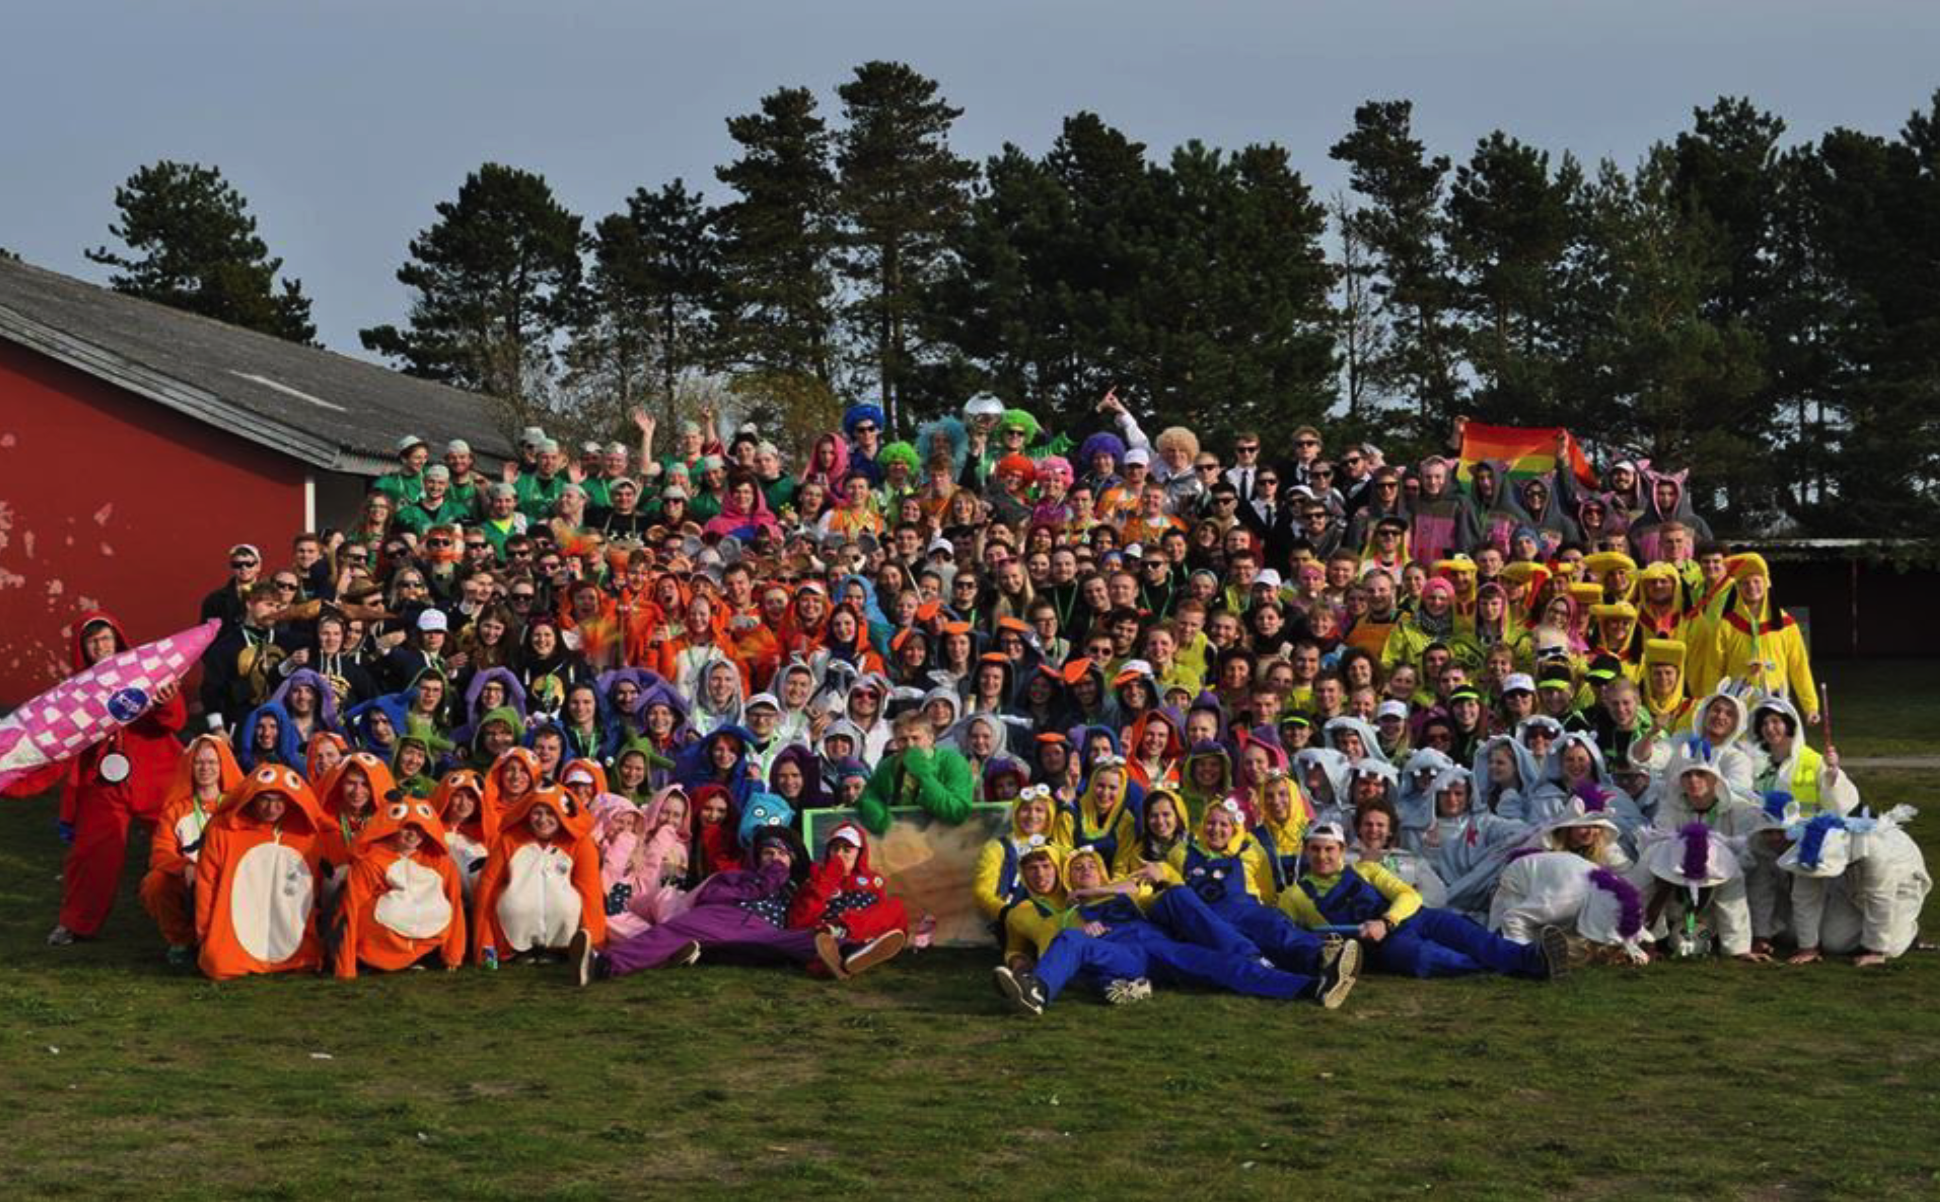 Total group of 300 tutors for managing 6 months of rushing. Different costumes distinguish different interdisciplinary taskforces (2014, with permission from Polyteknisk Forening).